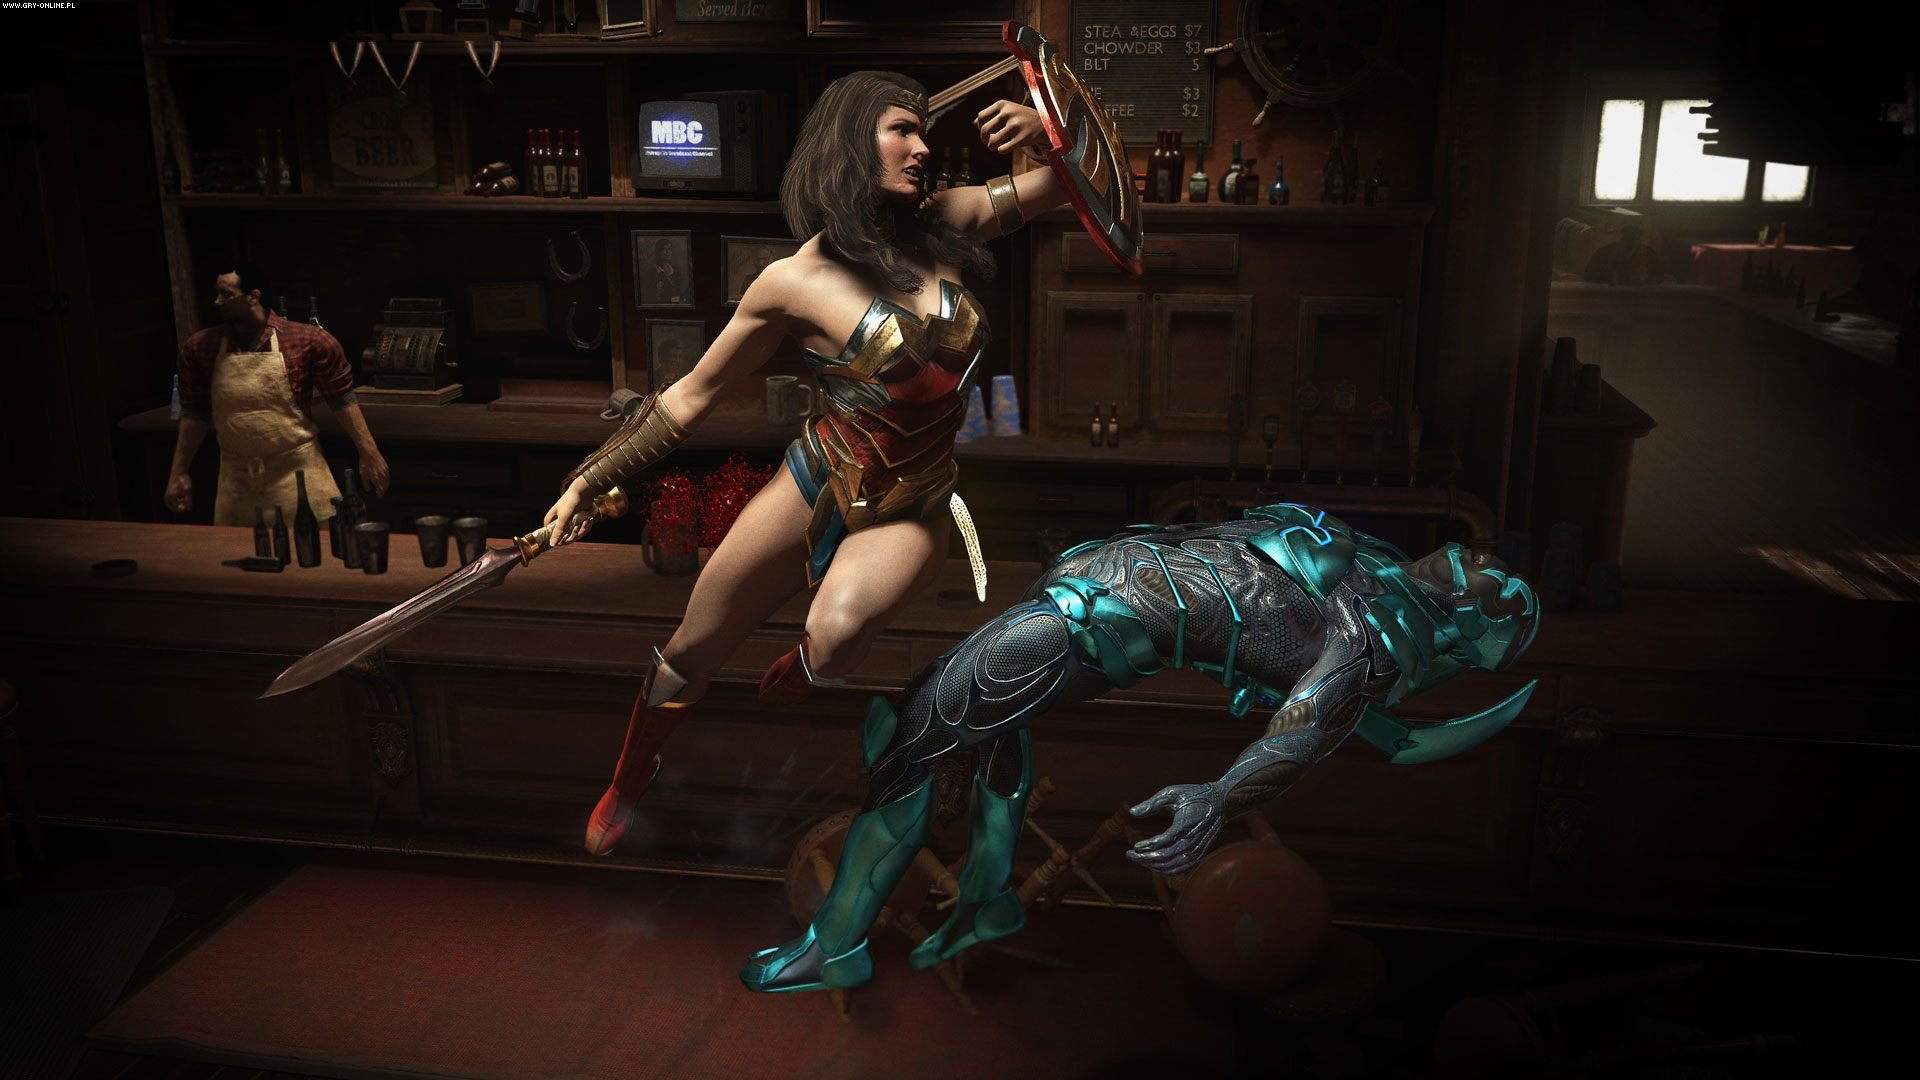 Injustice 2: Legendary Edition PC, PS4, XONE Gry Screen 2/10, NetherRealm Studios , Warner Bros. Interactive Entertainment